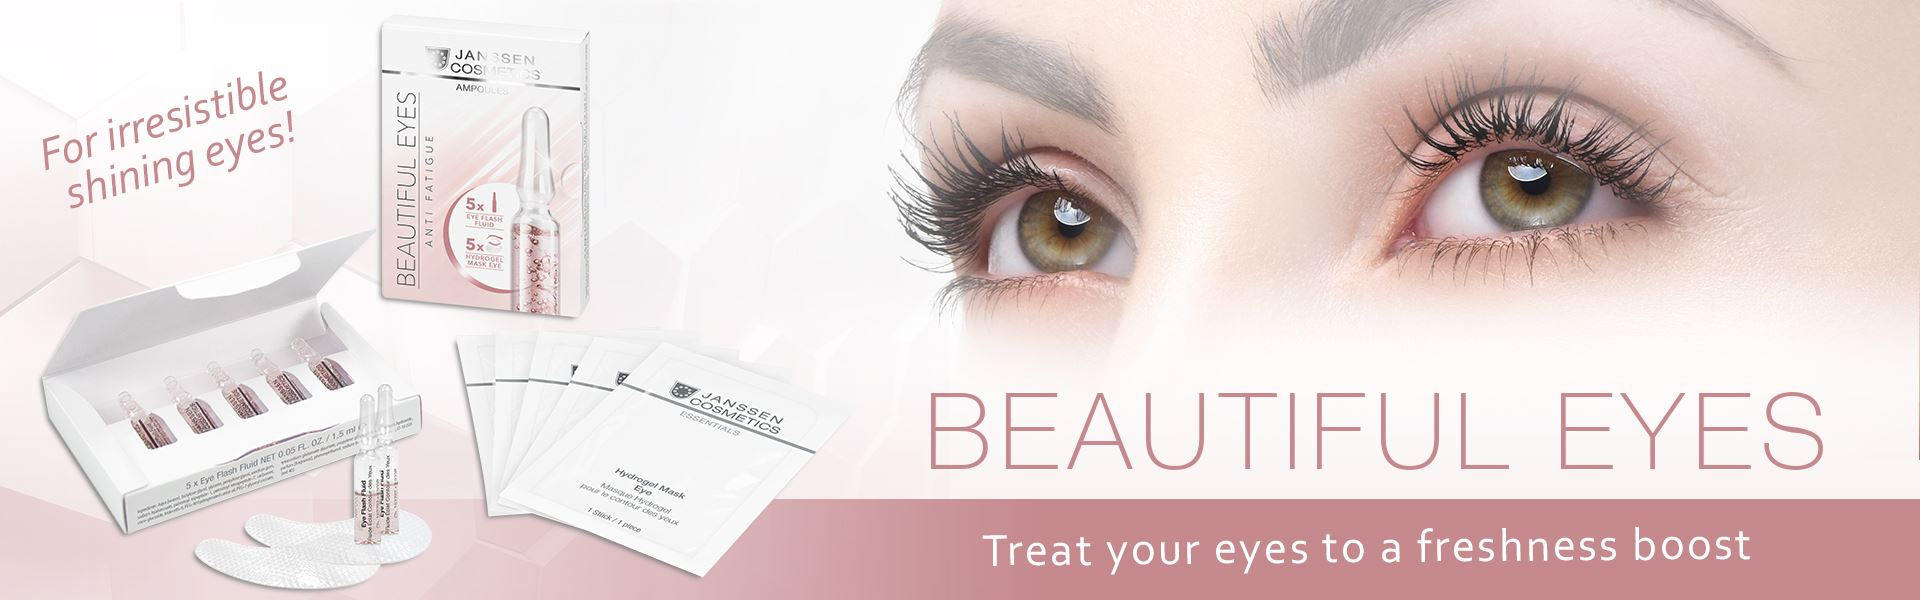 Beautiful Eyes - Treat your eyes to a freshness boost